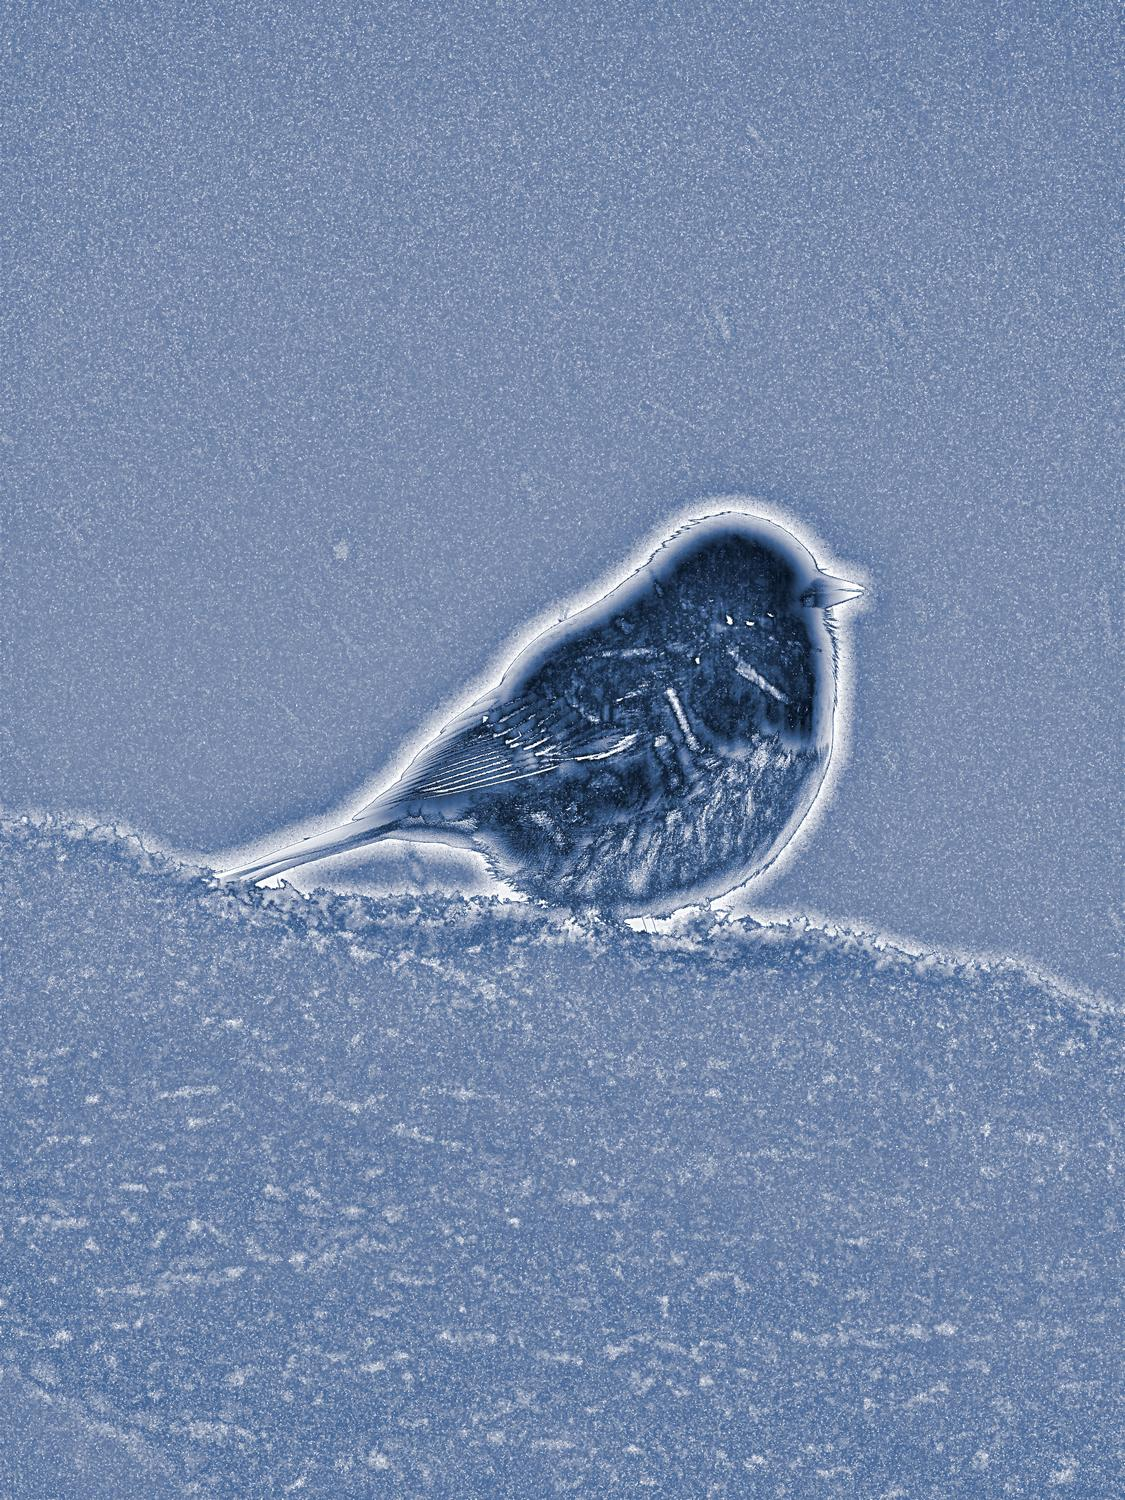 -  Panasonic DMC-FZ18 - Puffy blue bird in the snow - - art  - photography - by Tony Karp